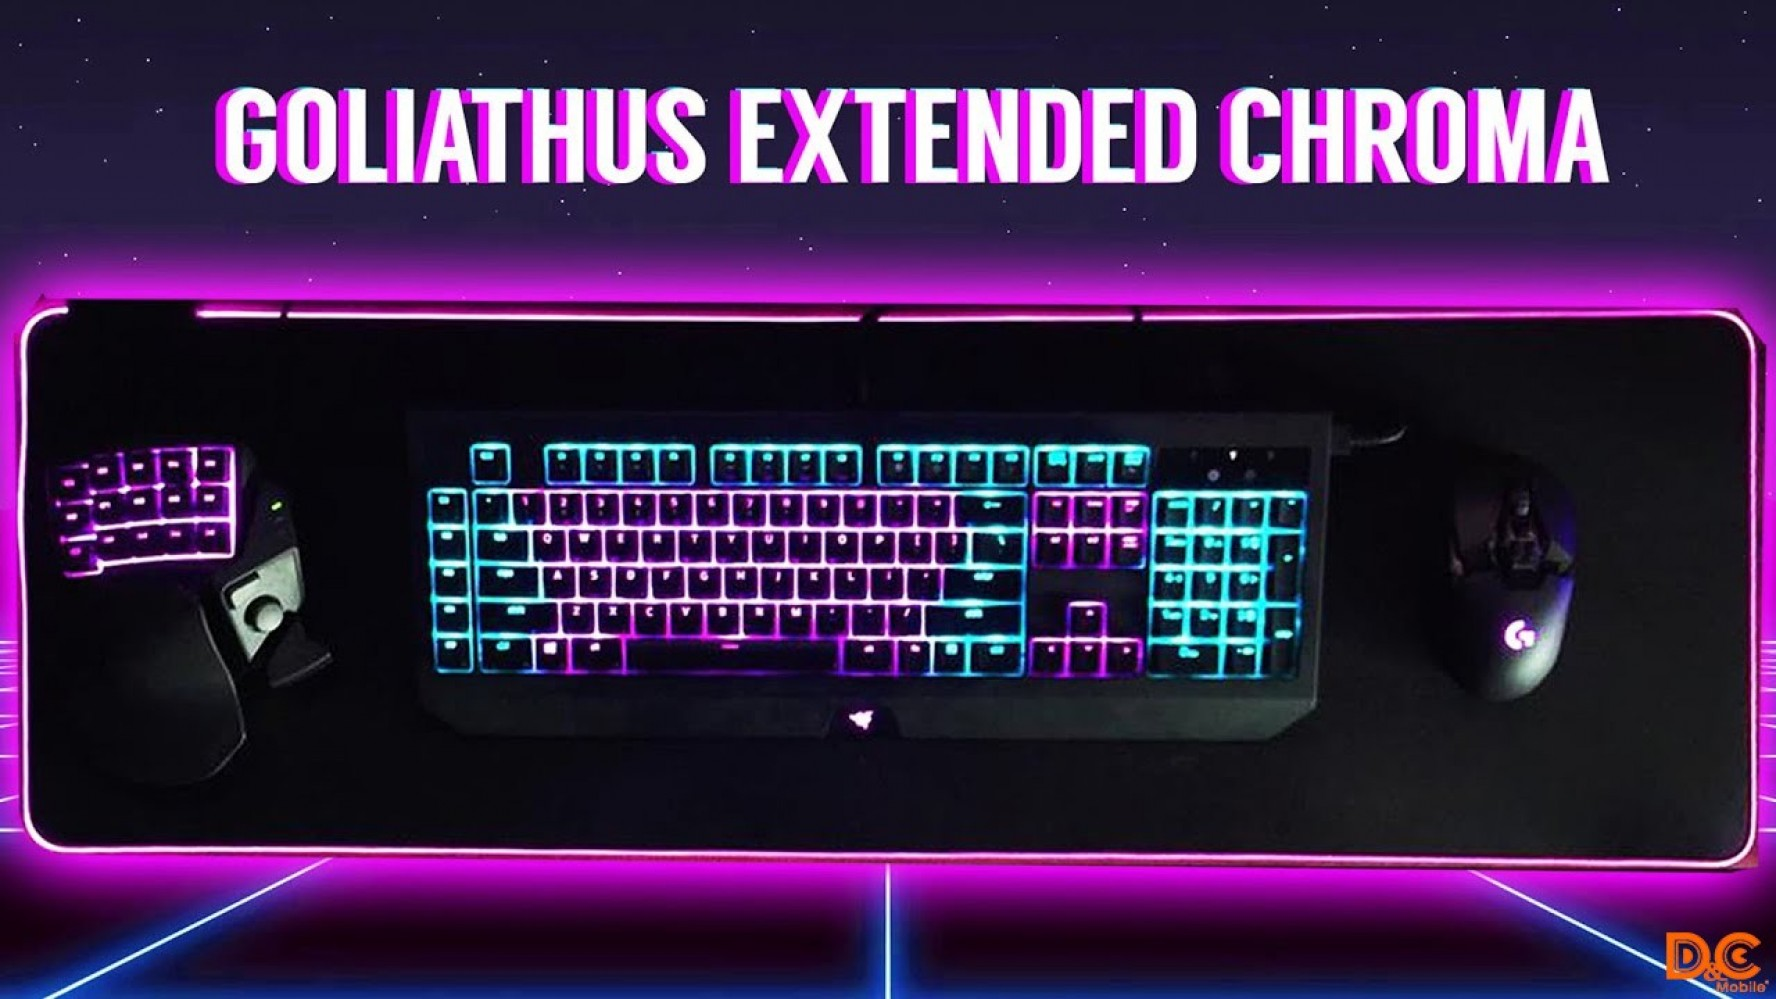 Razer Goliathus Extended Chroma - Soft Gaming Mouse Mat with Chroma - Quartz